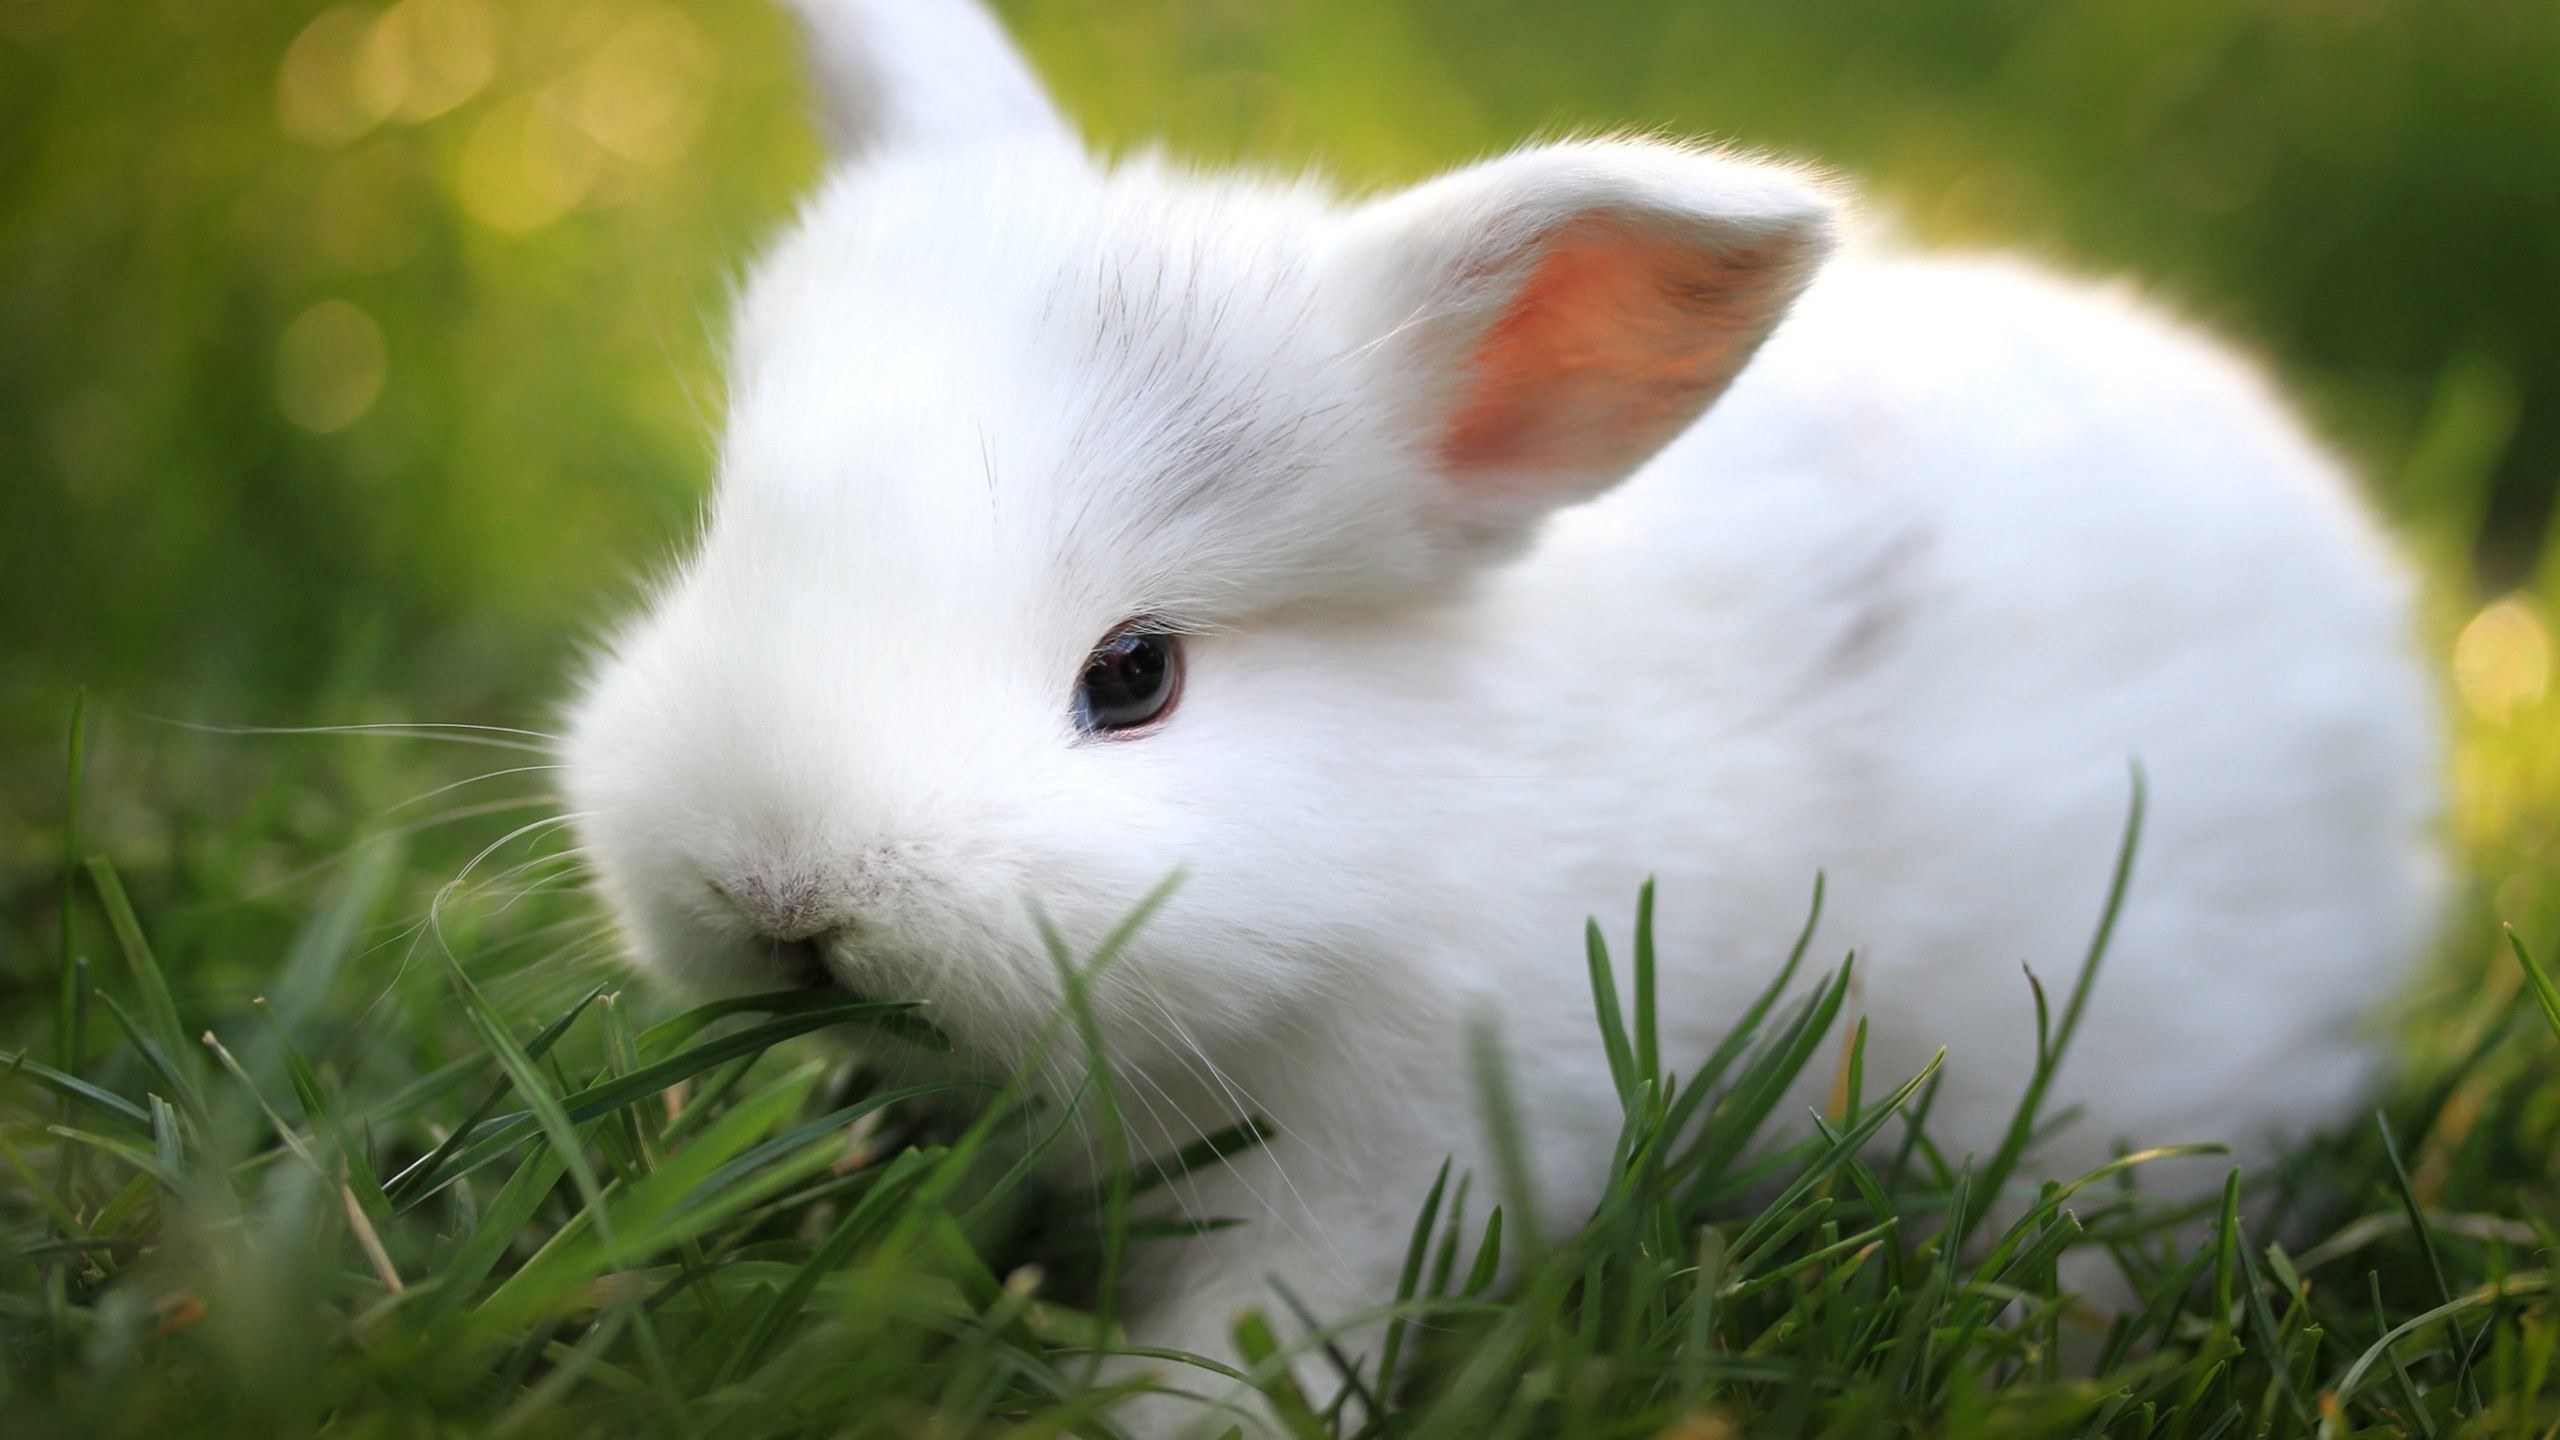 adorable wallpapers,rabbit,domestic rabbit,rabbits and hares,grass,whiskers